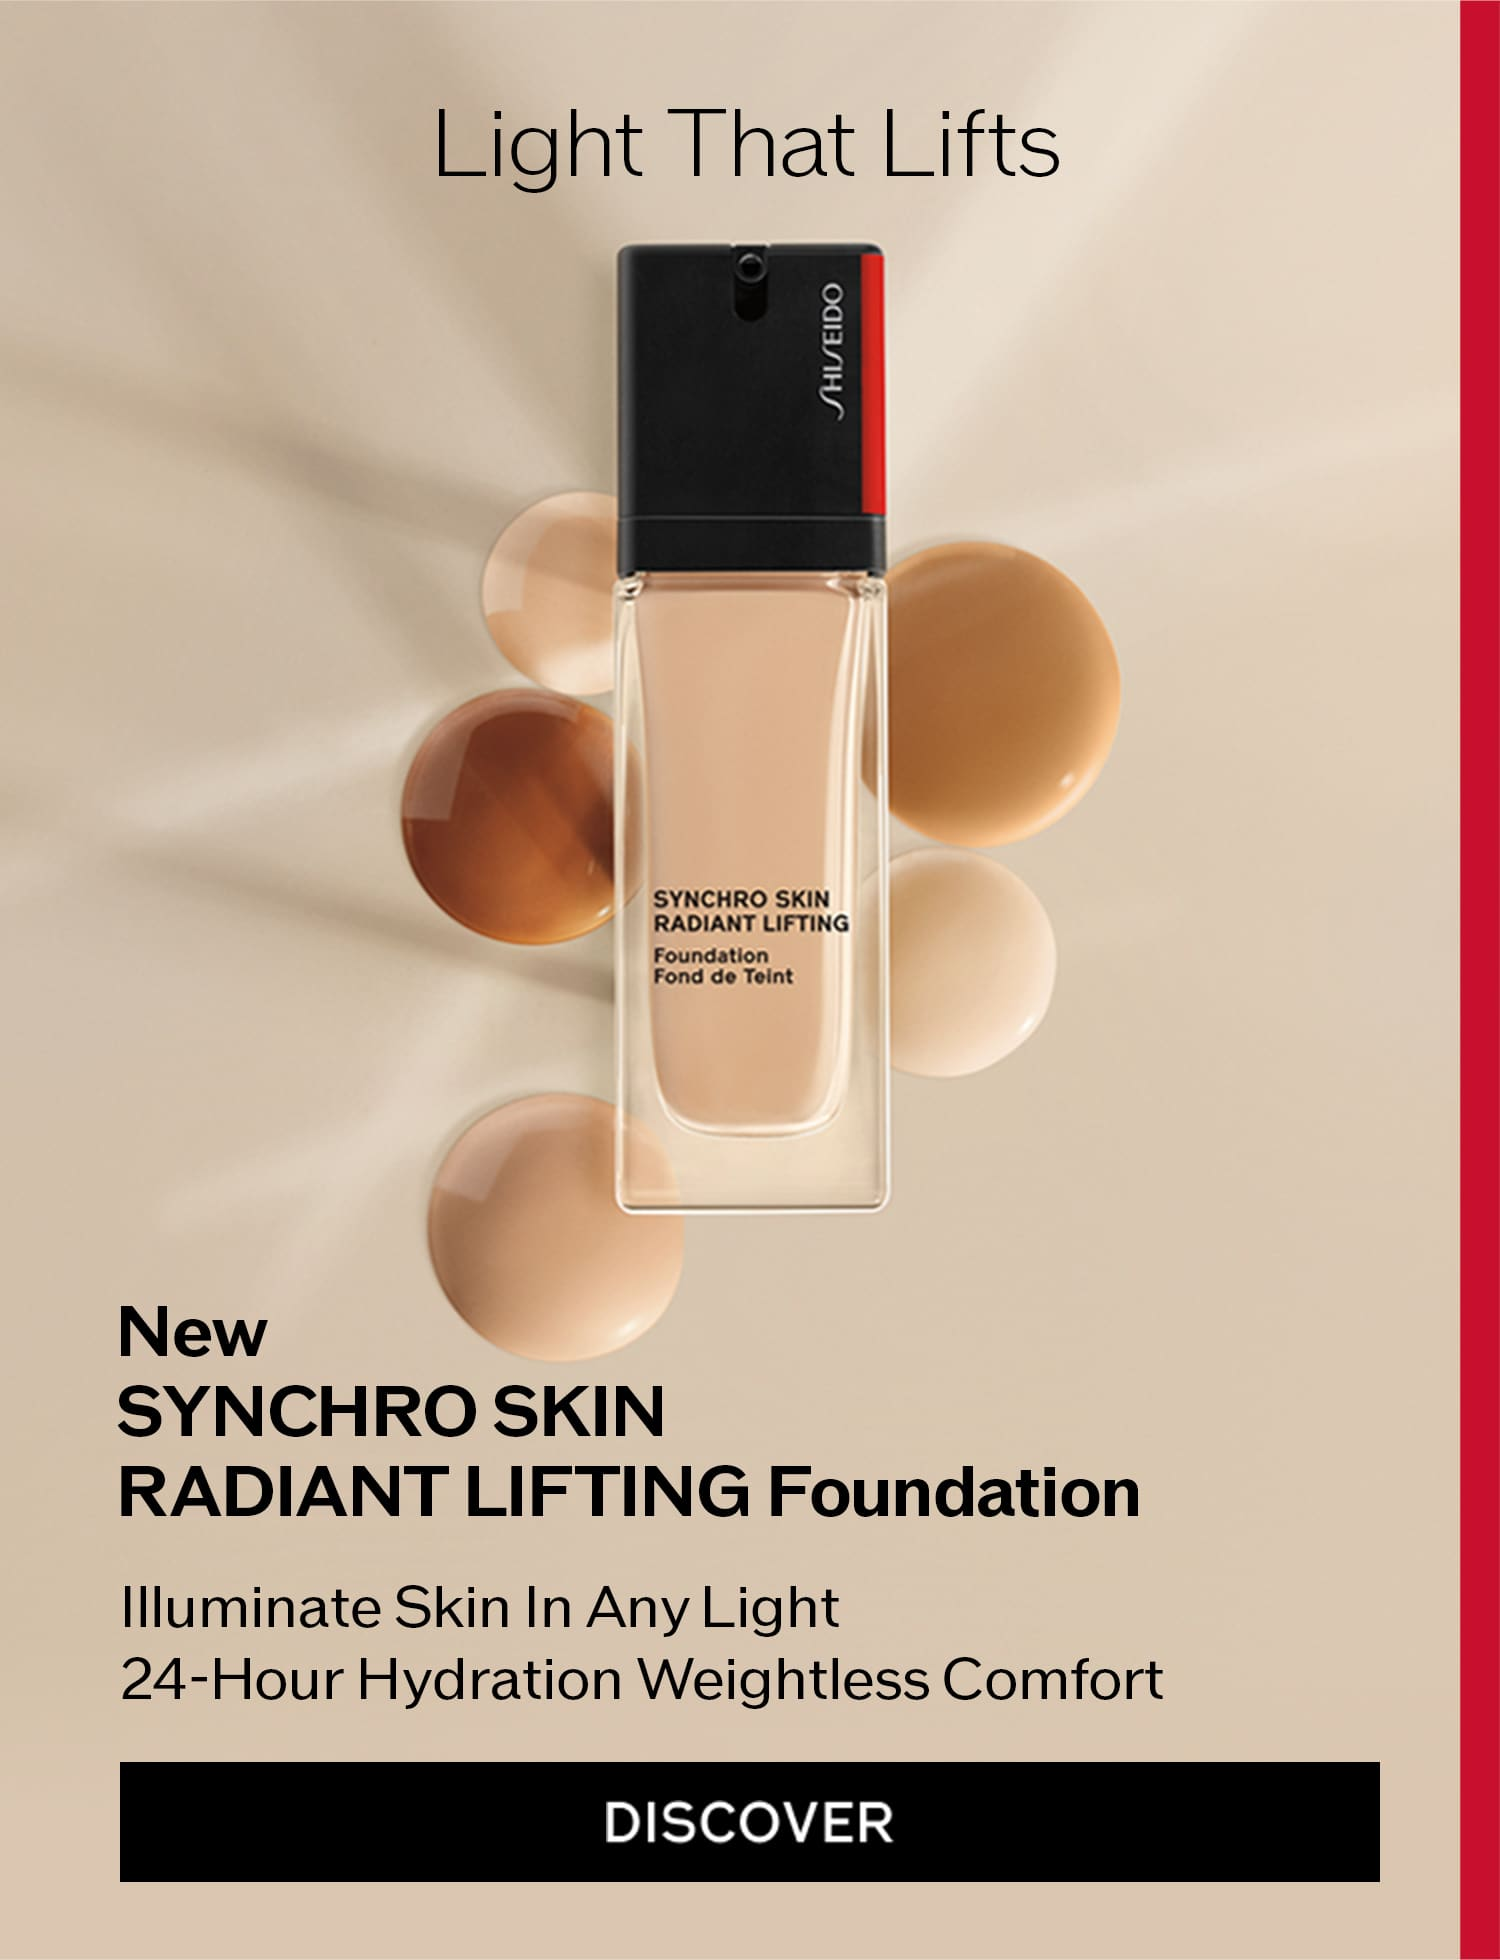 Light That Lifts New SYNCHRO SKINRADIANT LIFTING Foundation Illuminate Skin In Any Light 24-Hour Hydration Weightless Comfort